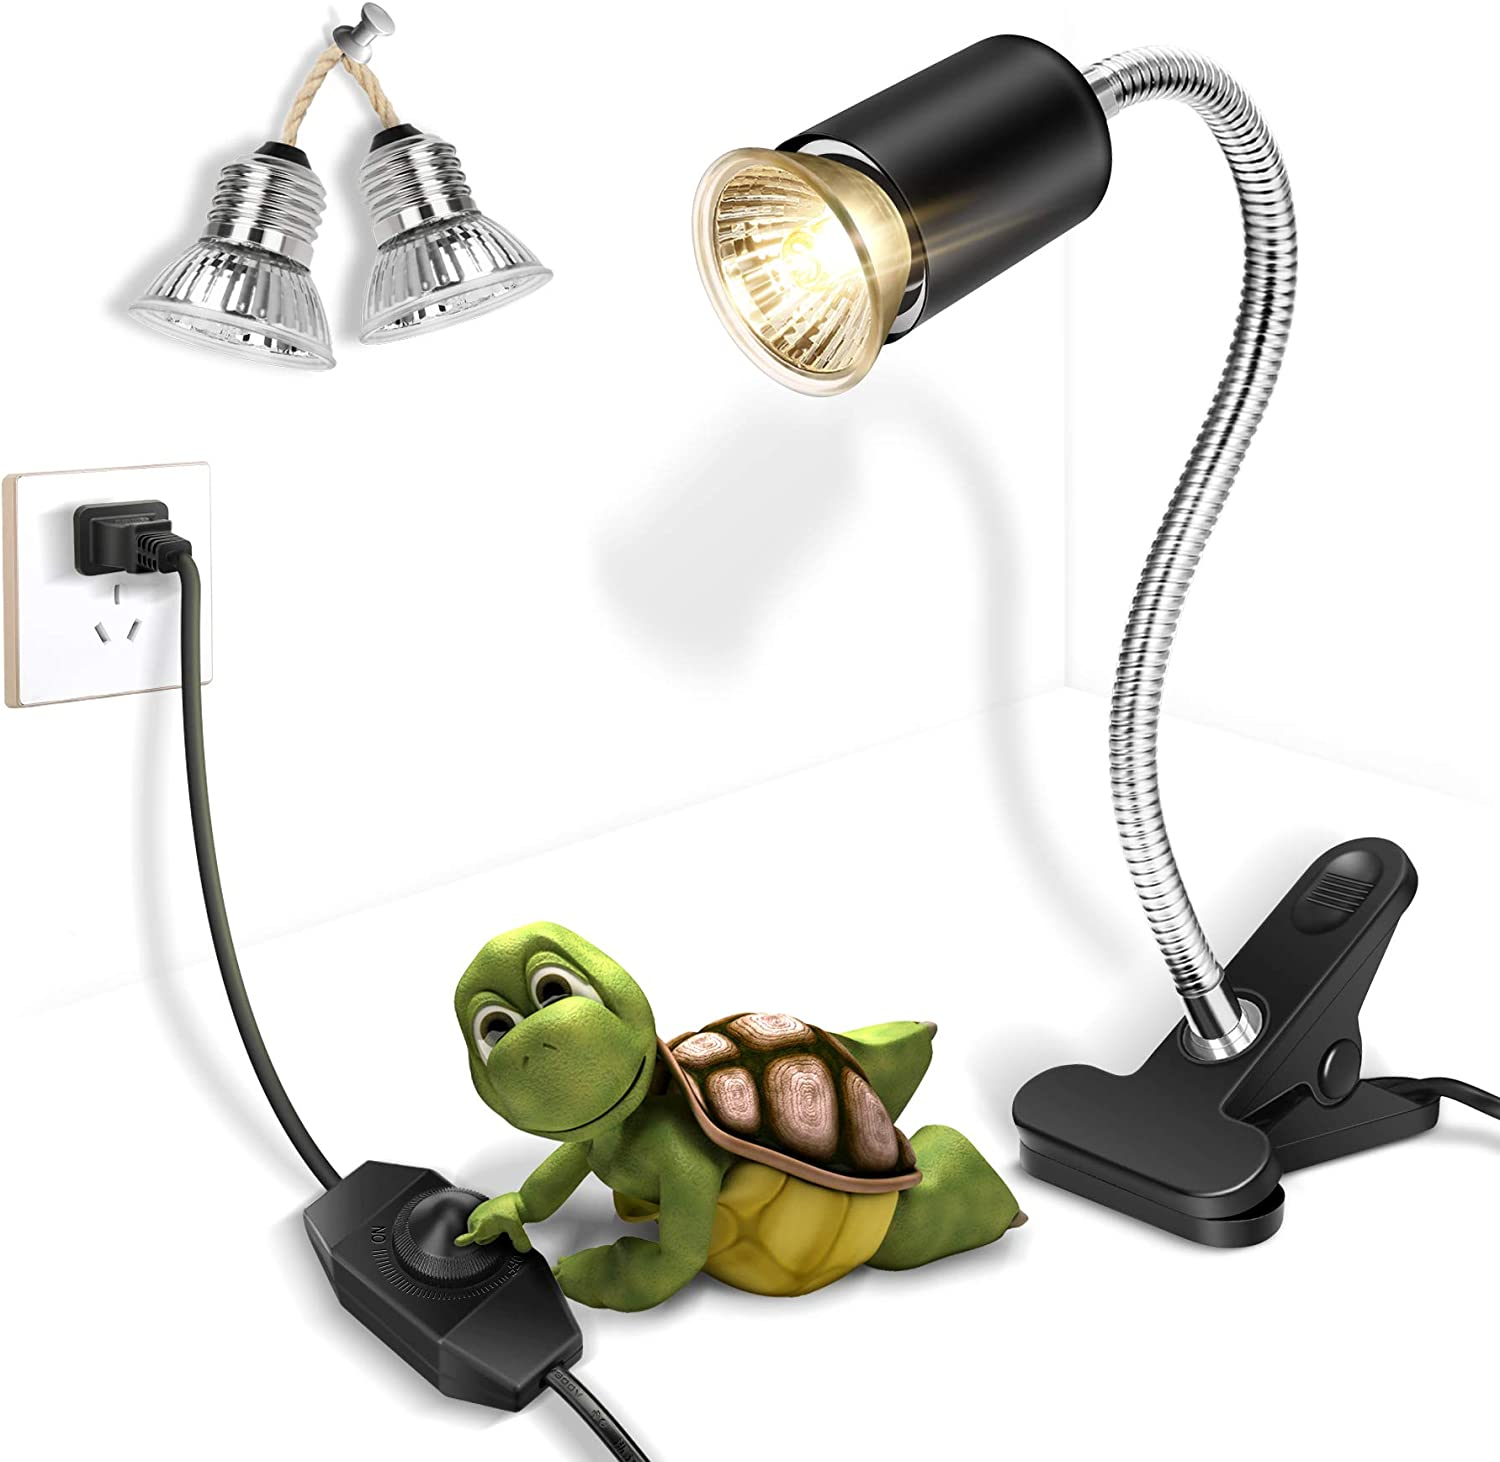 Fischuel Reptile UV Bulb,Heating Lamp with Clamp, Adjustable Habitat Basking Heat Lamp ,UVA/UVB Light Lamp 360° Rotatable Clip and Power Adapter for Aquarium(Bulb Included) (E27,110V)